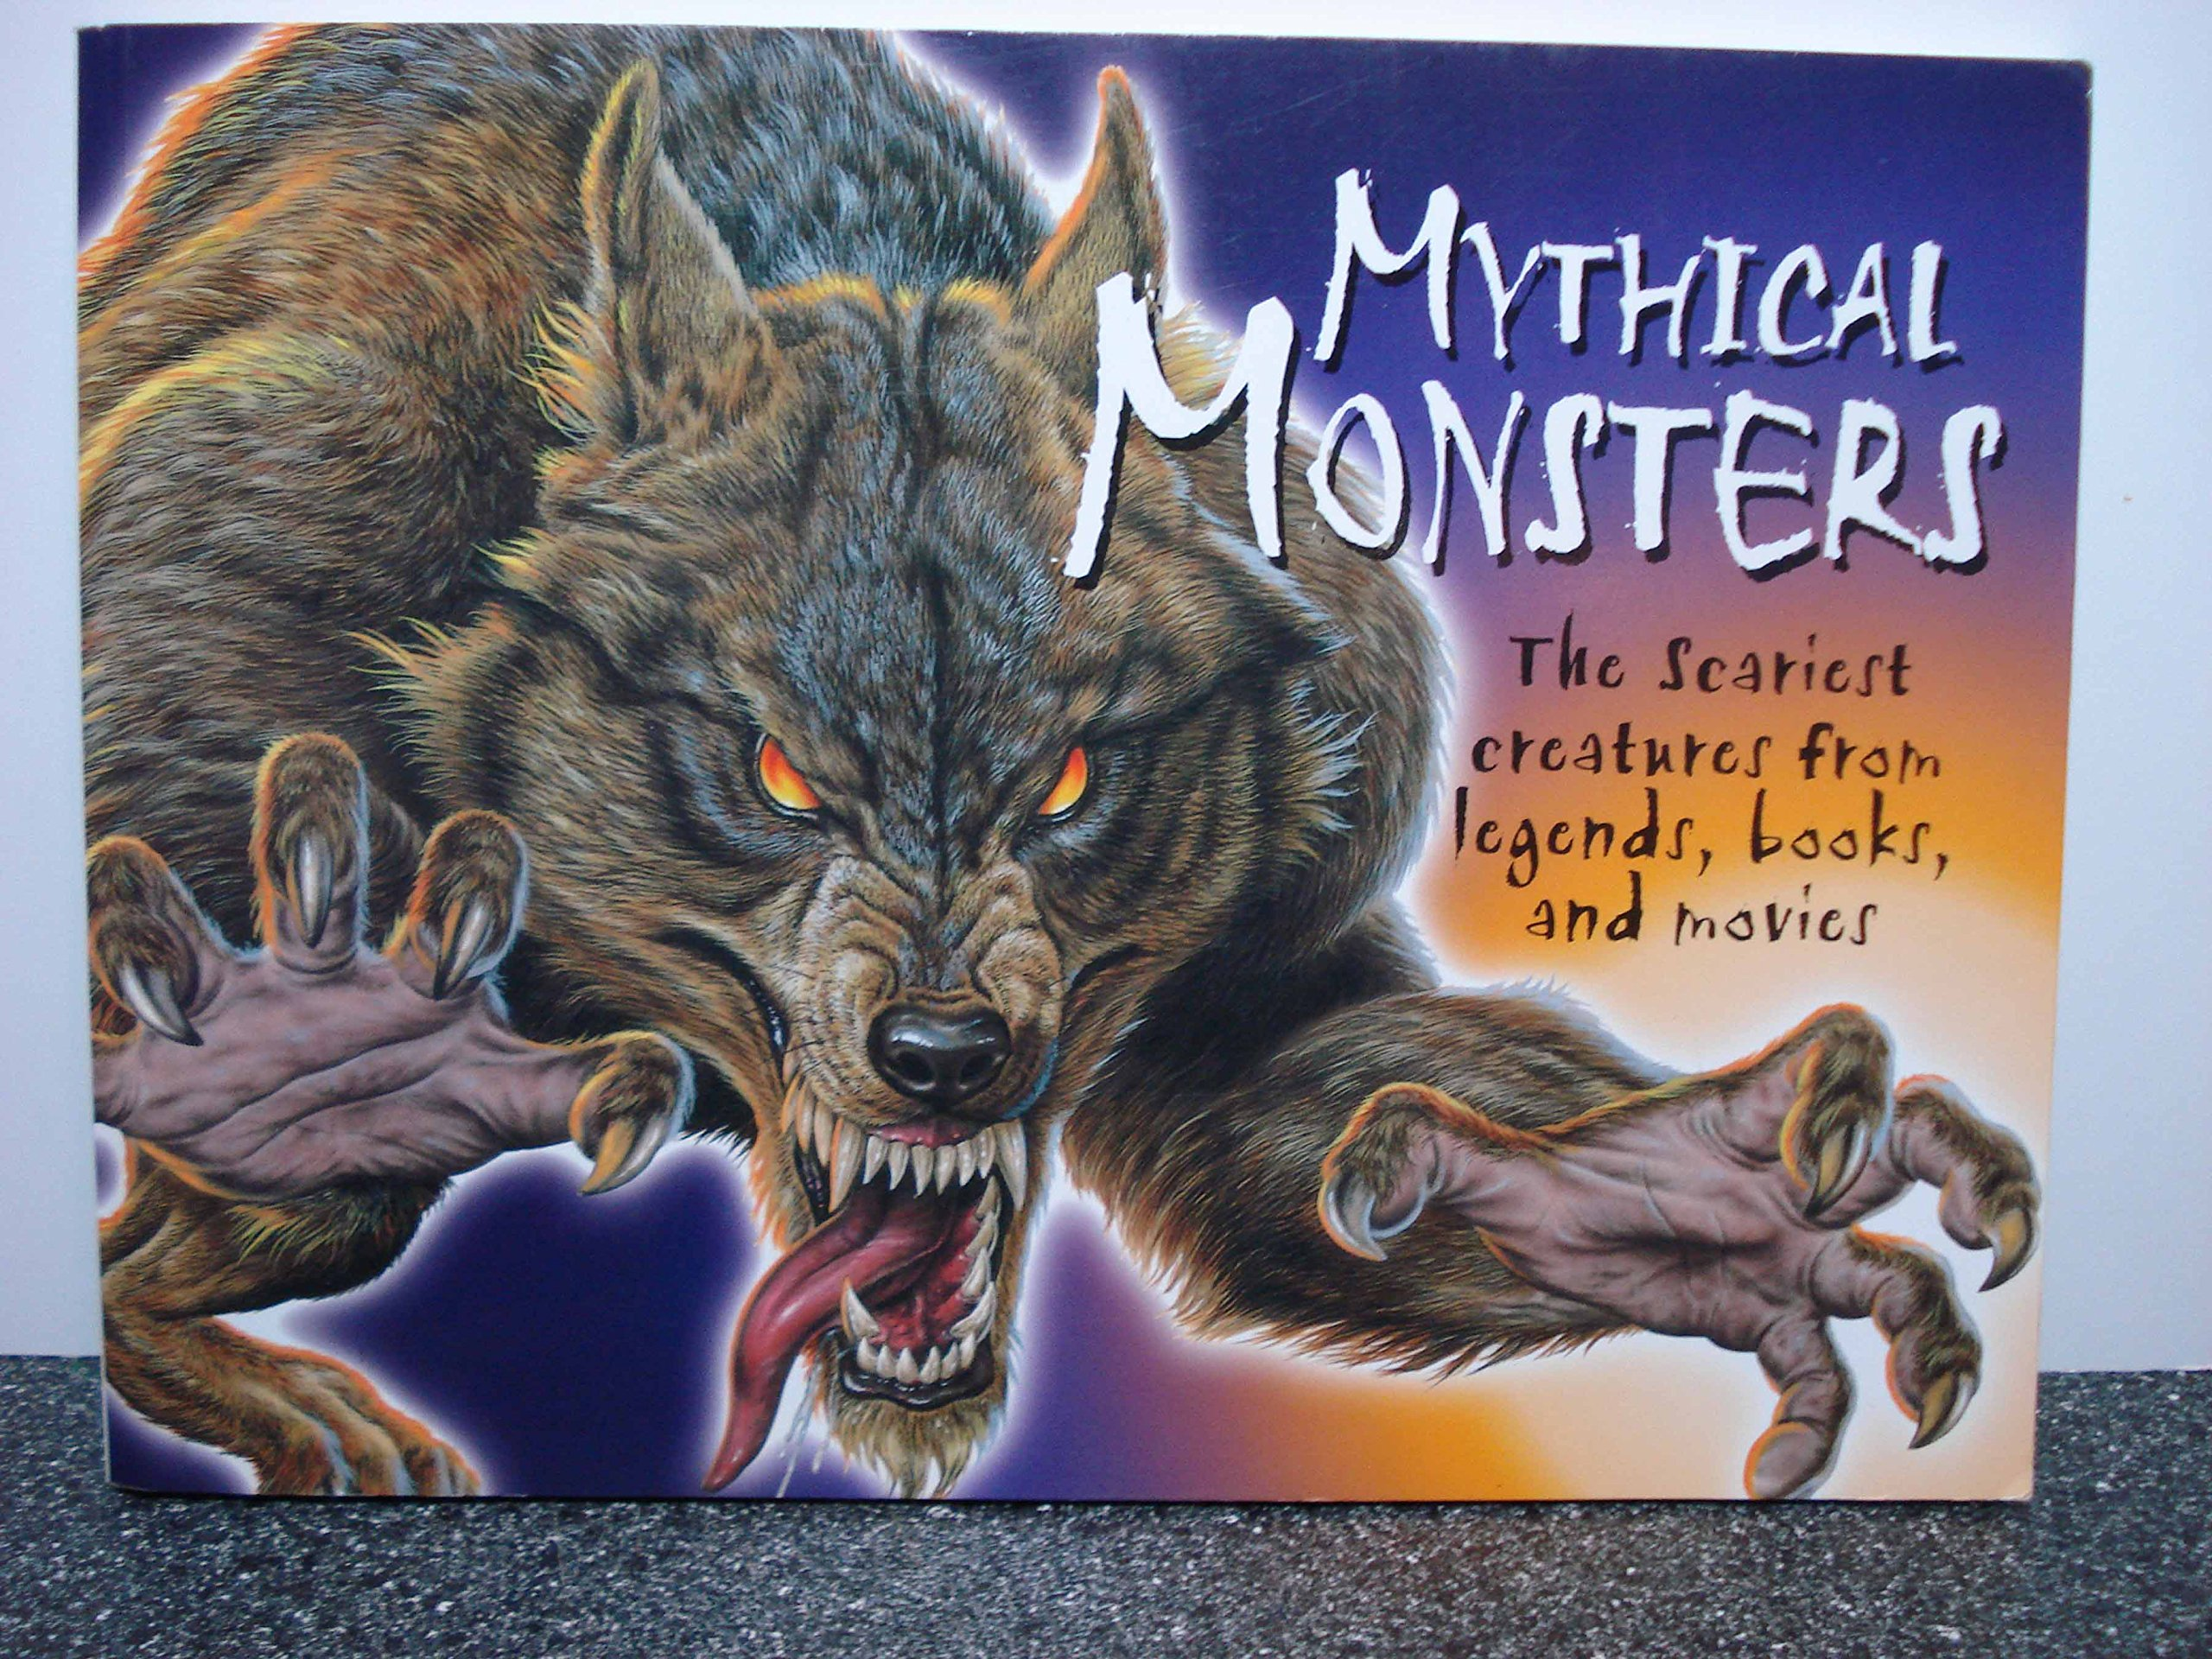 Mythical Monsters Scariest Creatures Legends product image